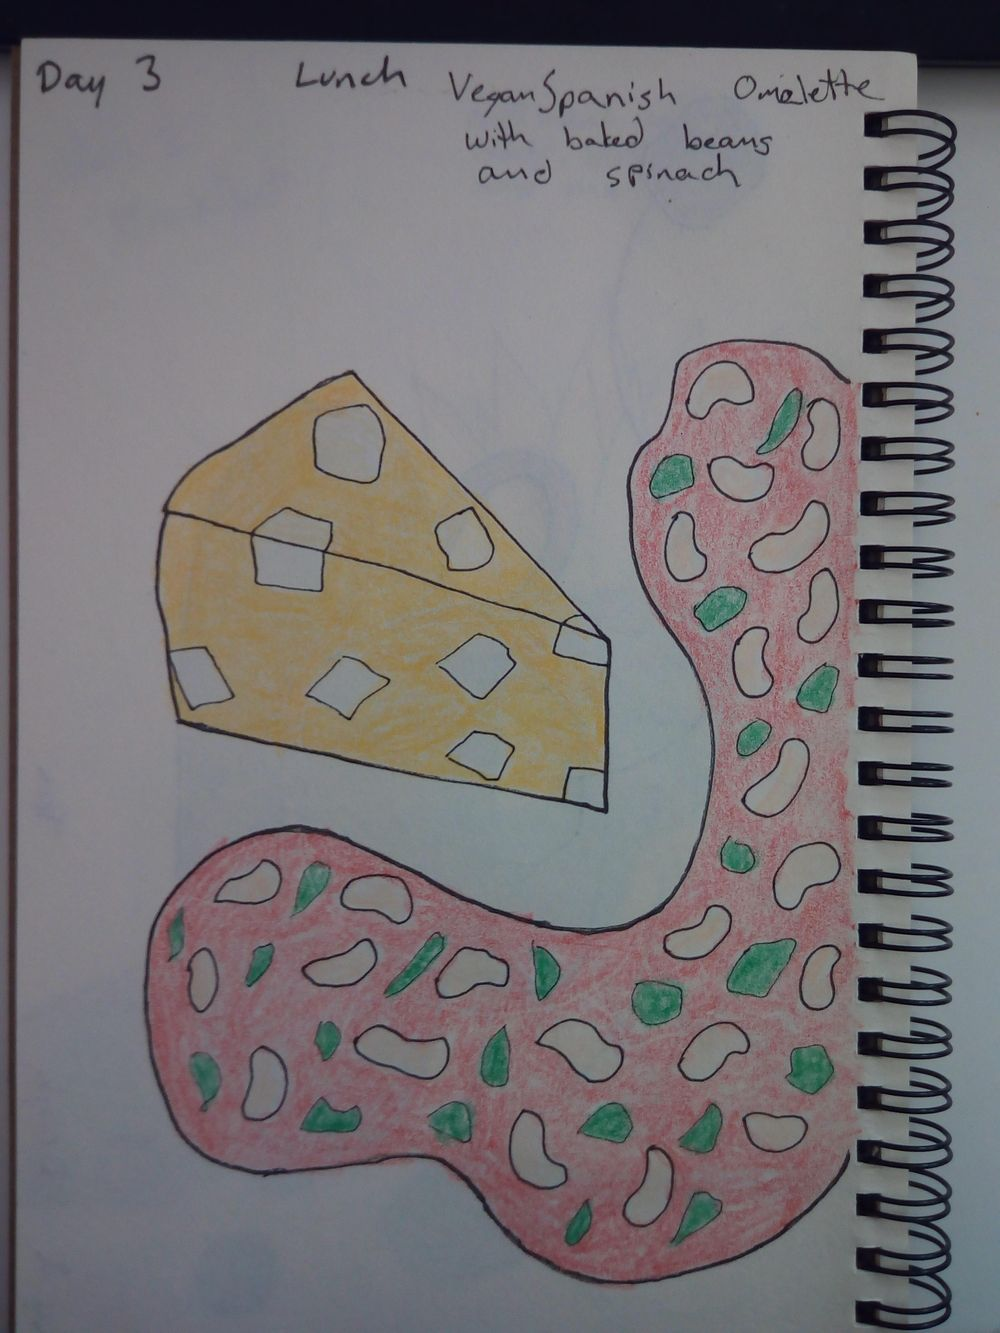 mindful eating/drawing - image 3 - student project